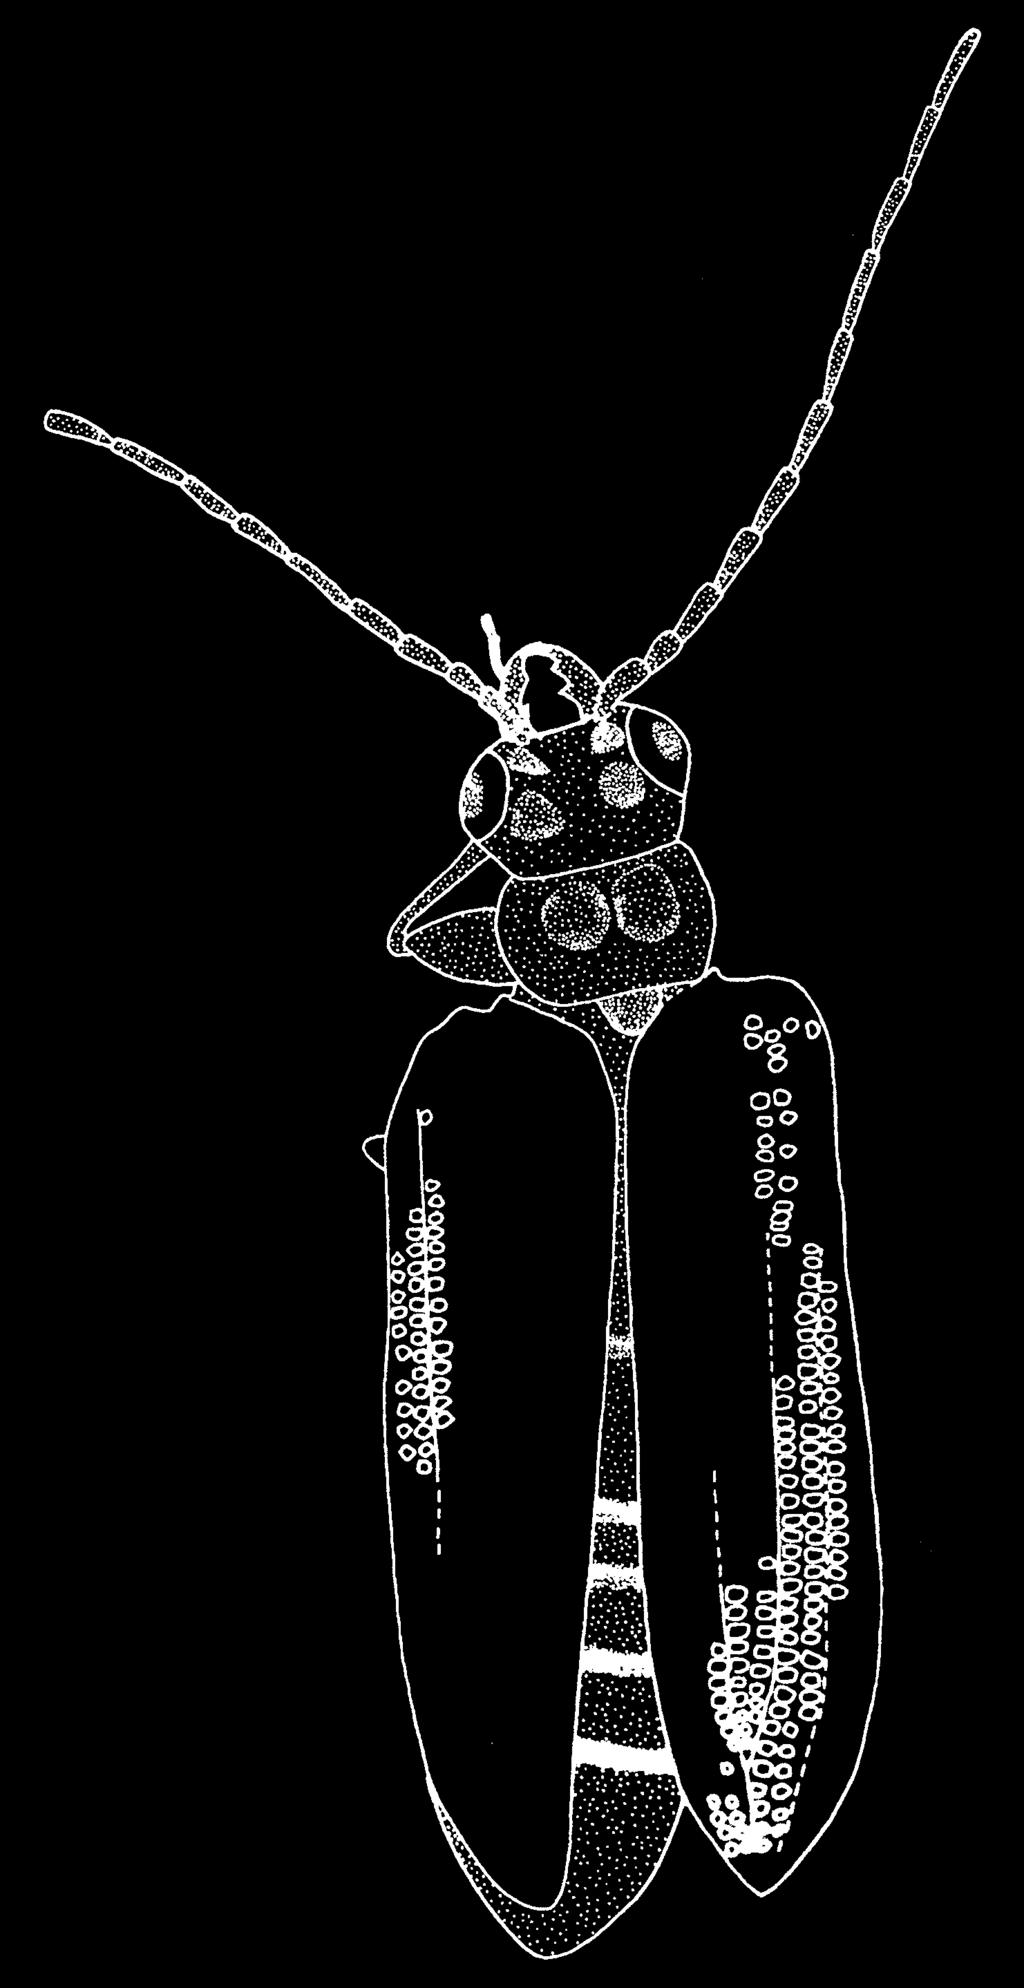 (1) Photograph, holotype; (2) dorsal view; (3) ventral view, (4) fore leg, (5) antennae, (6) outline